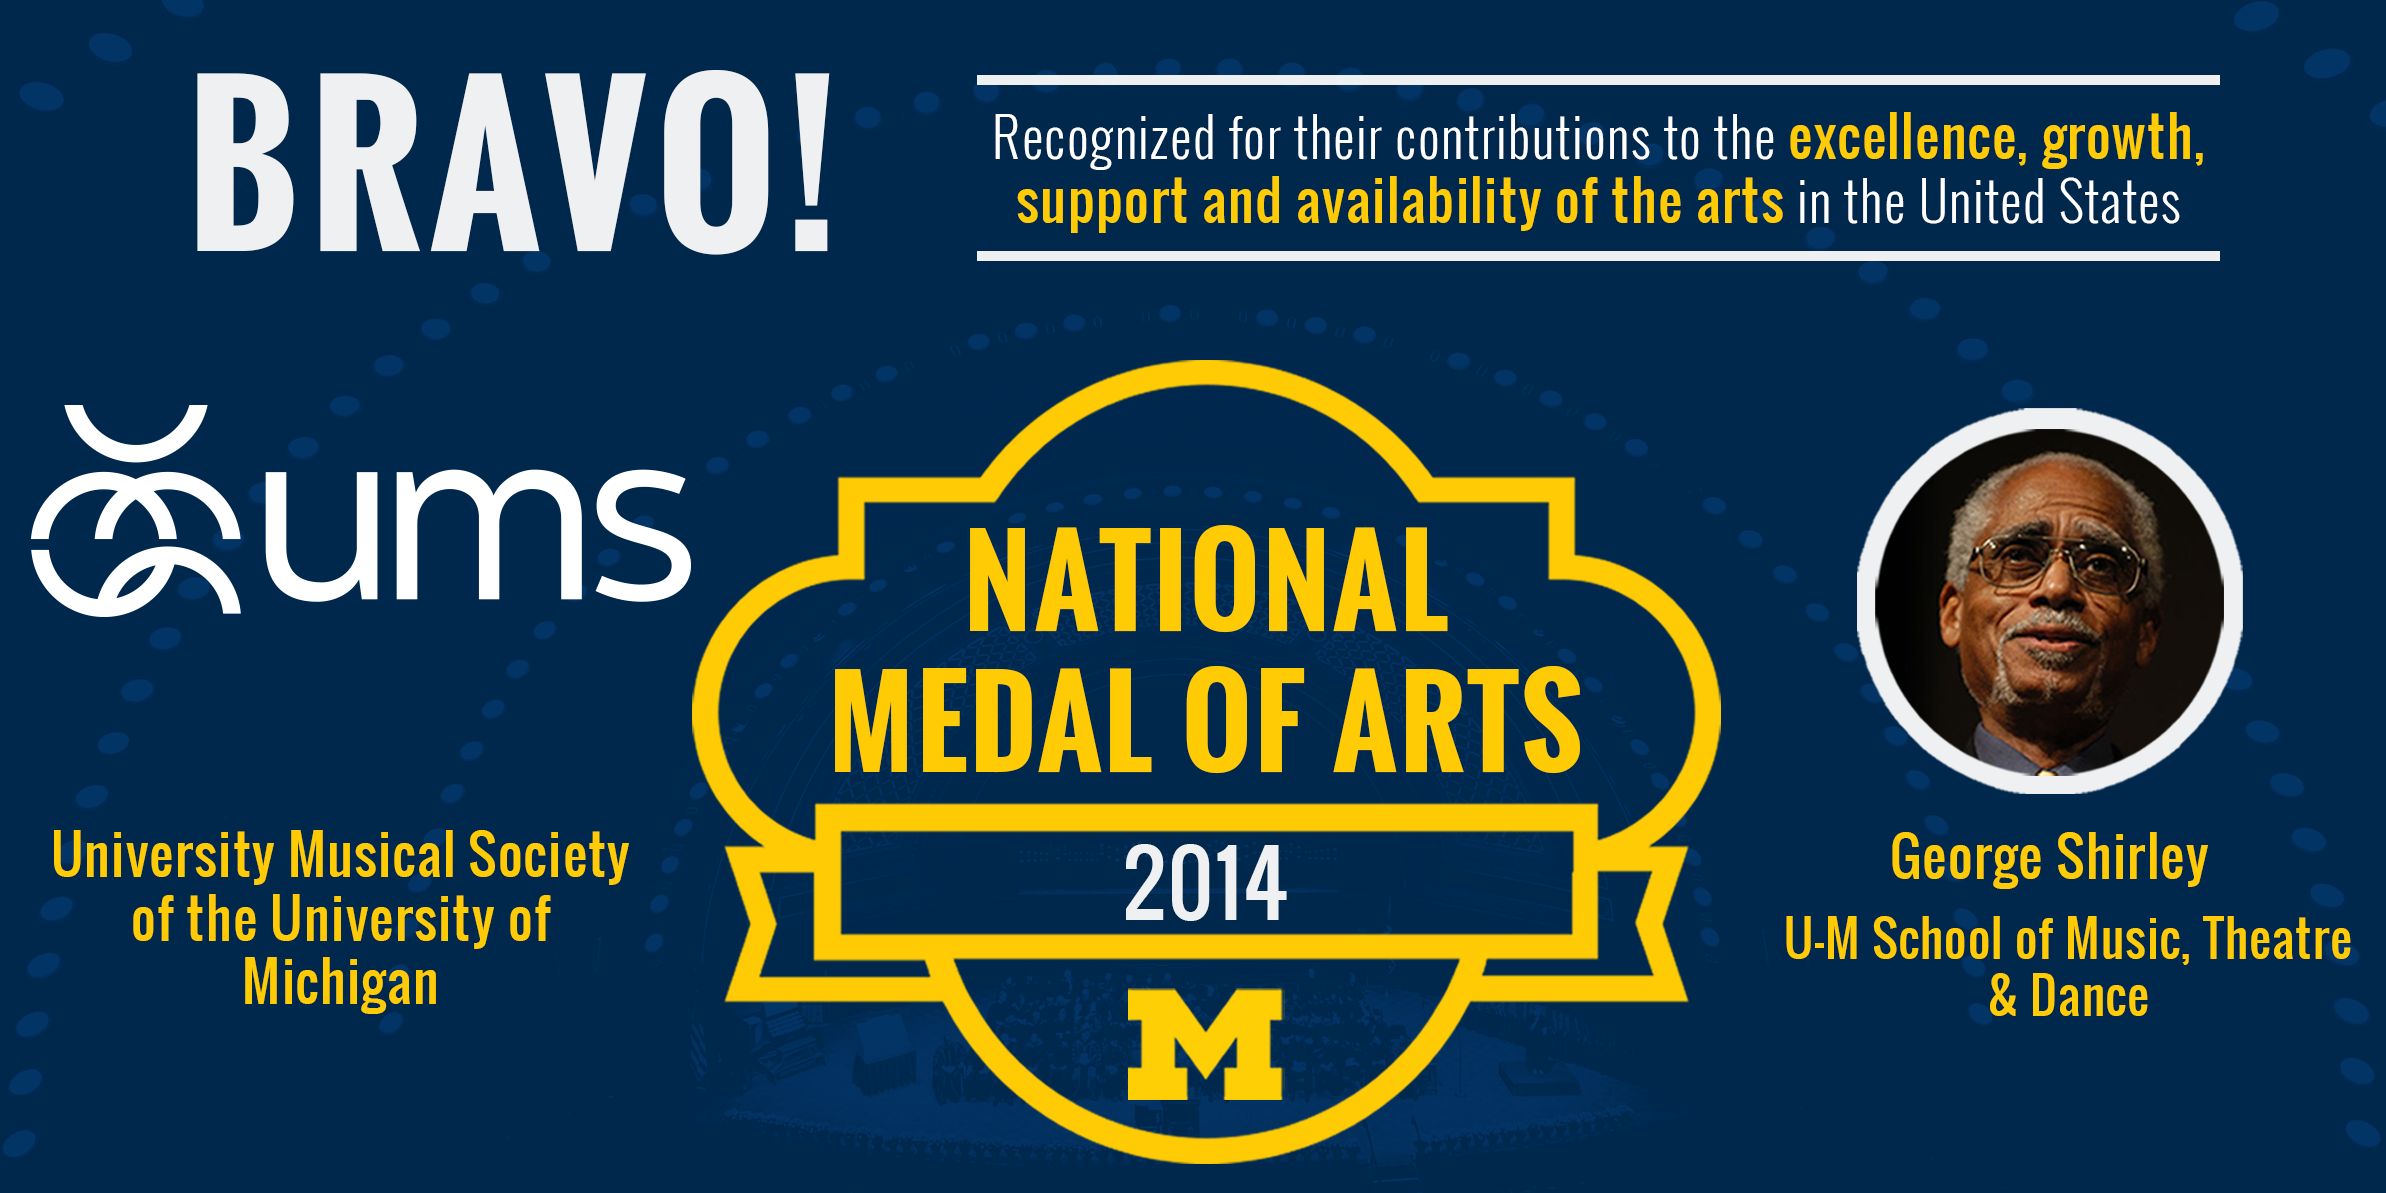 Congratulations to the University Musical Society of the University of Michigan and George Shirley of U-M's School of Music, Theatre & Dance